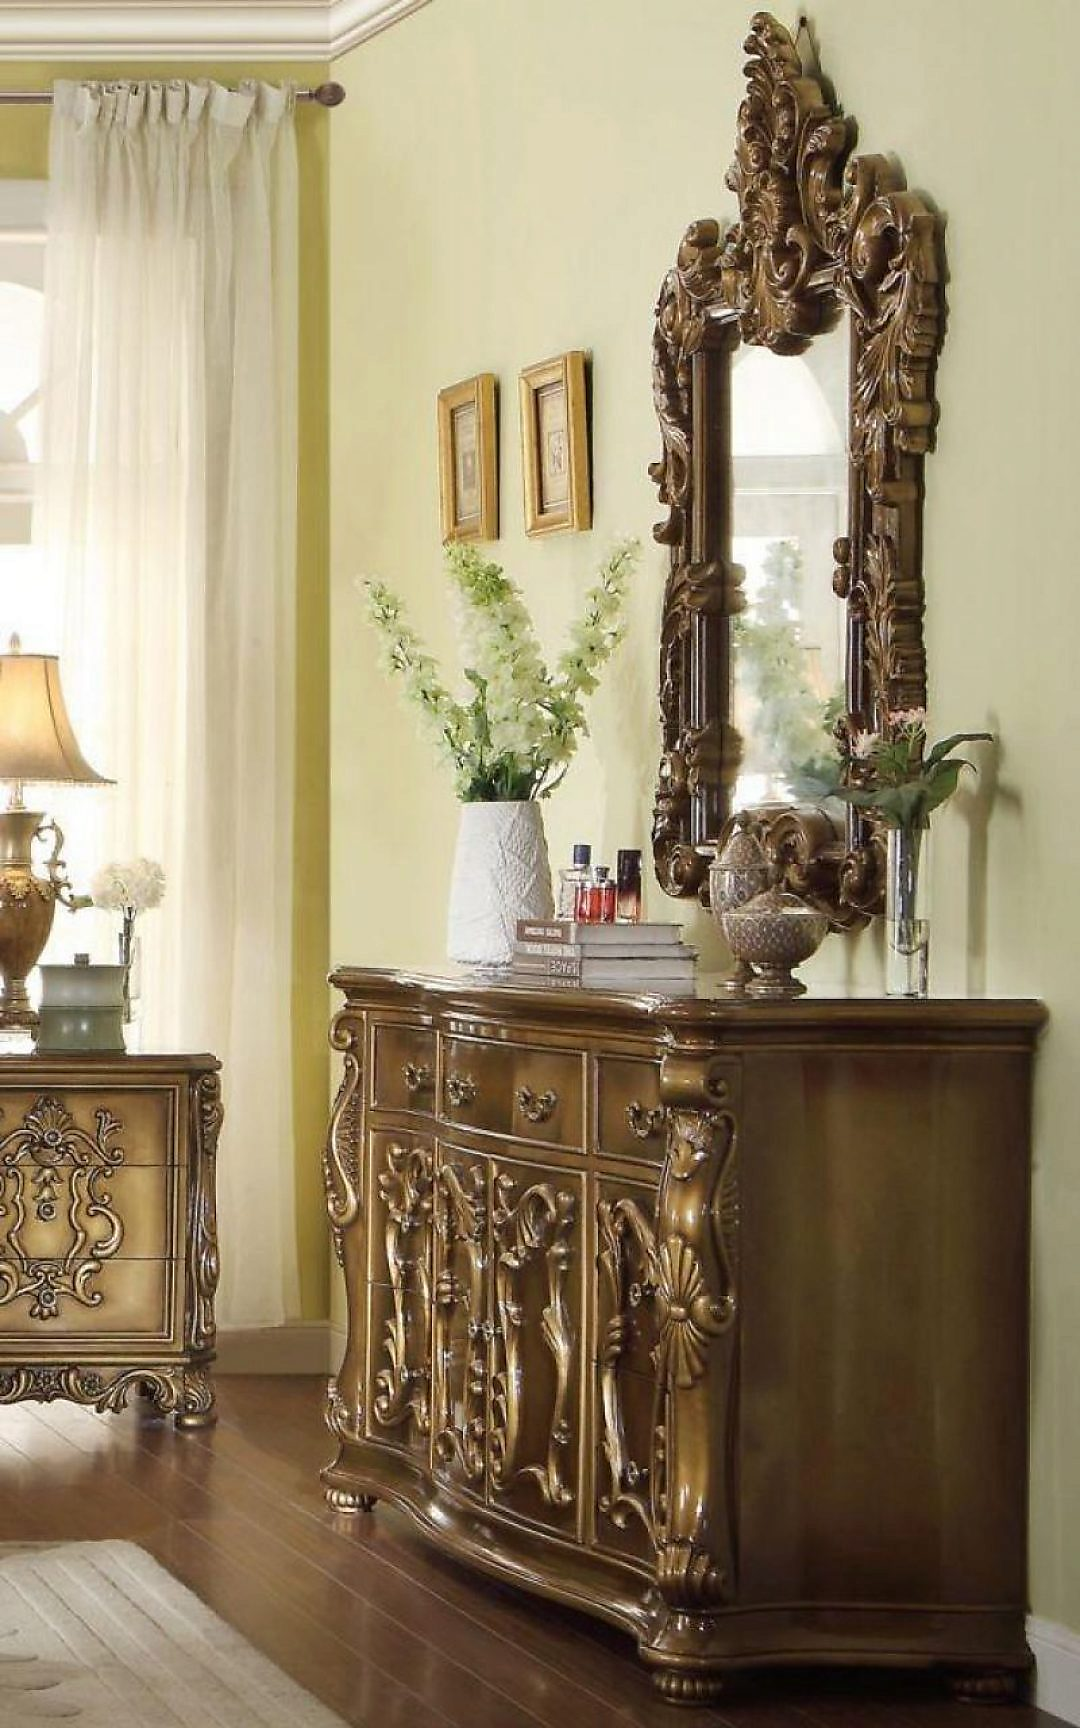 Traditional Luxury HD-8008-DM Gilded Dresser in Golden Brown by Homey Design